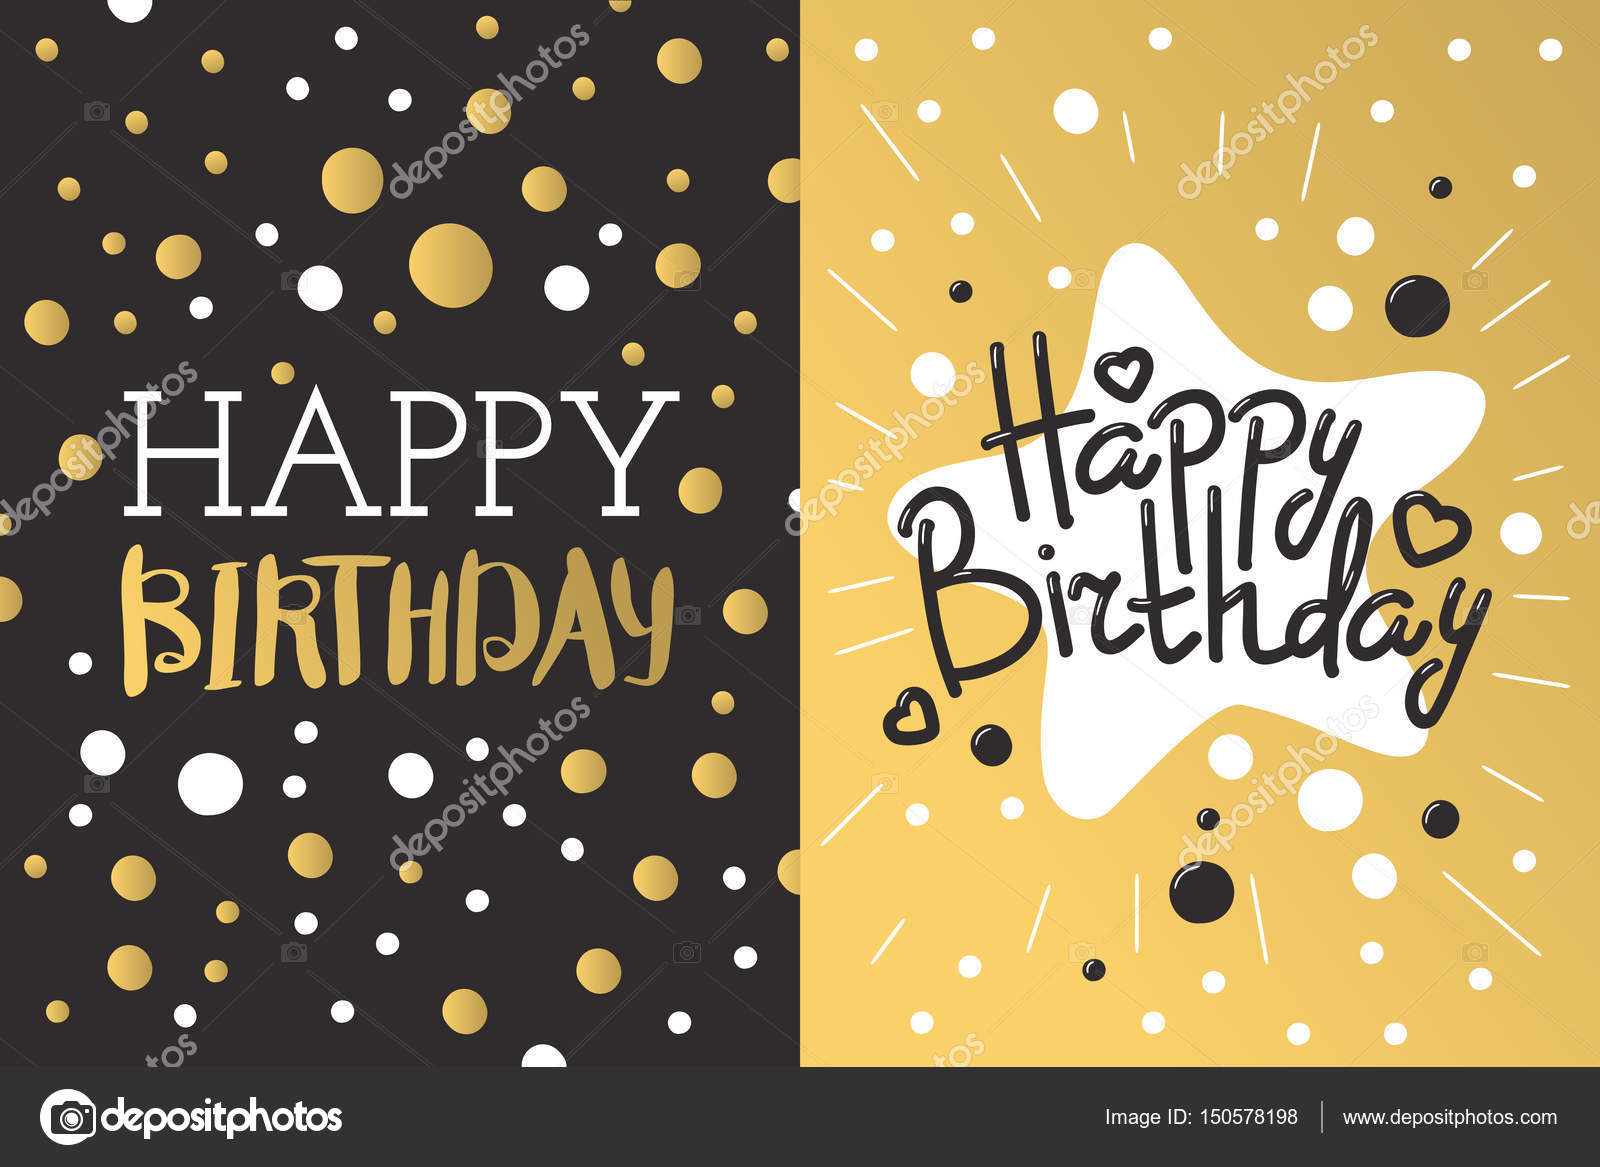 Beautiful birthday invitation card design gold and black colors beautiful birthday invitation card design gold and black colors vector greeting decoration strips lettering calligraphy text for party festive cartoon filmwisefo